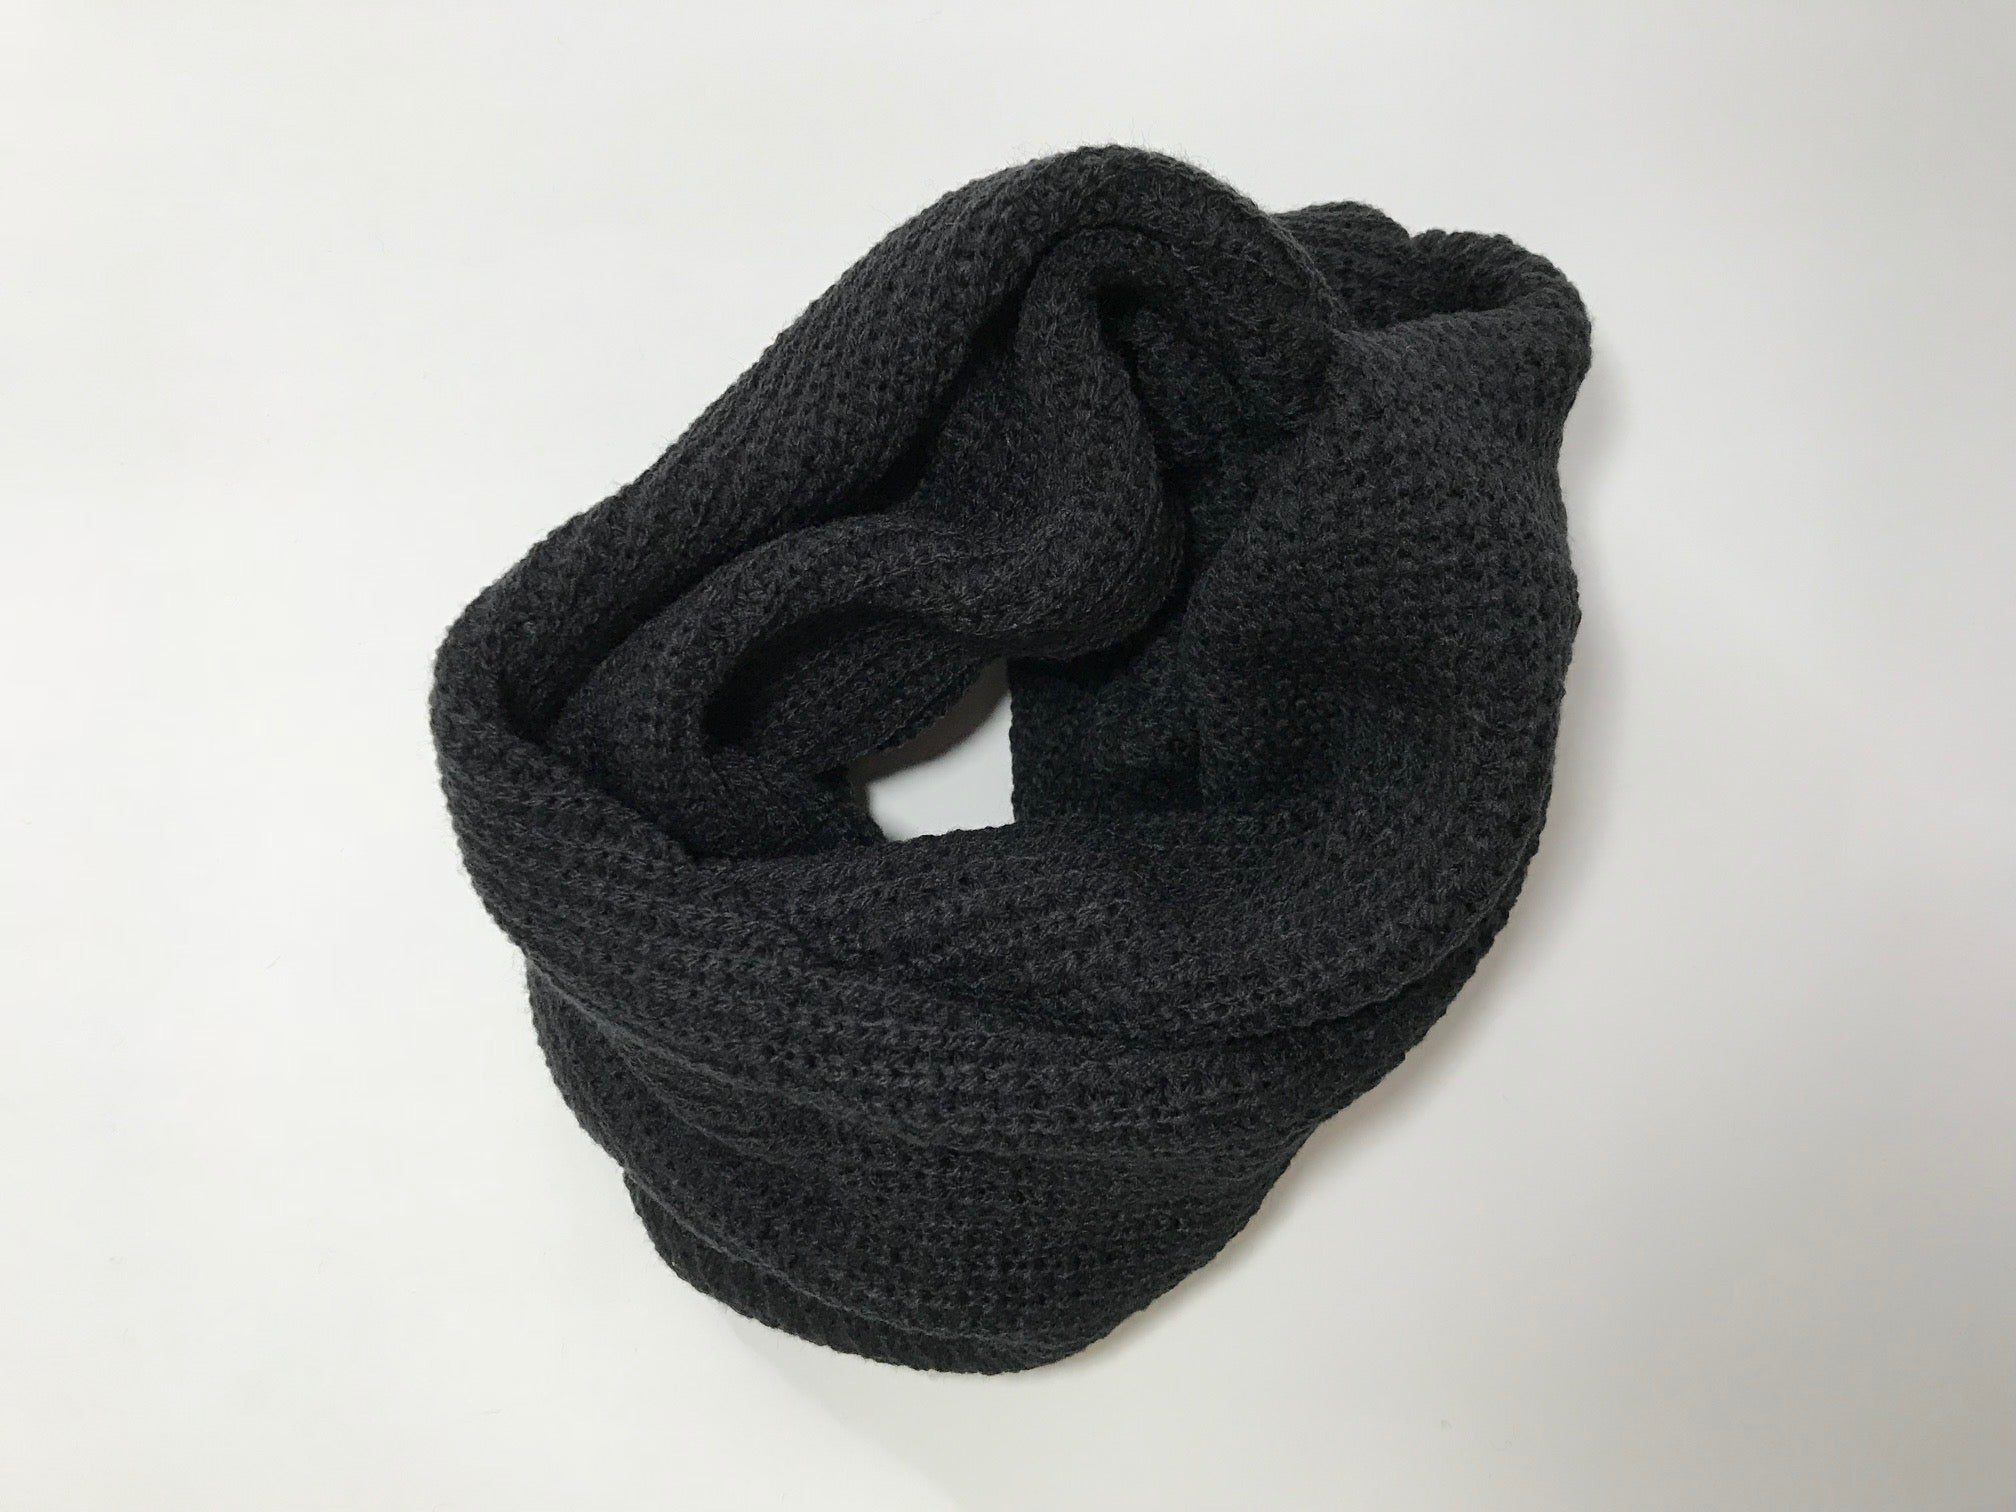 NECKHAT Beanie and Neck Warmer - Black